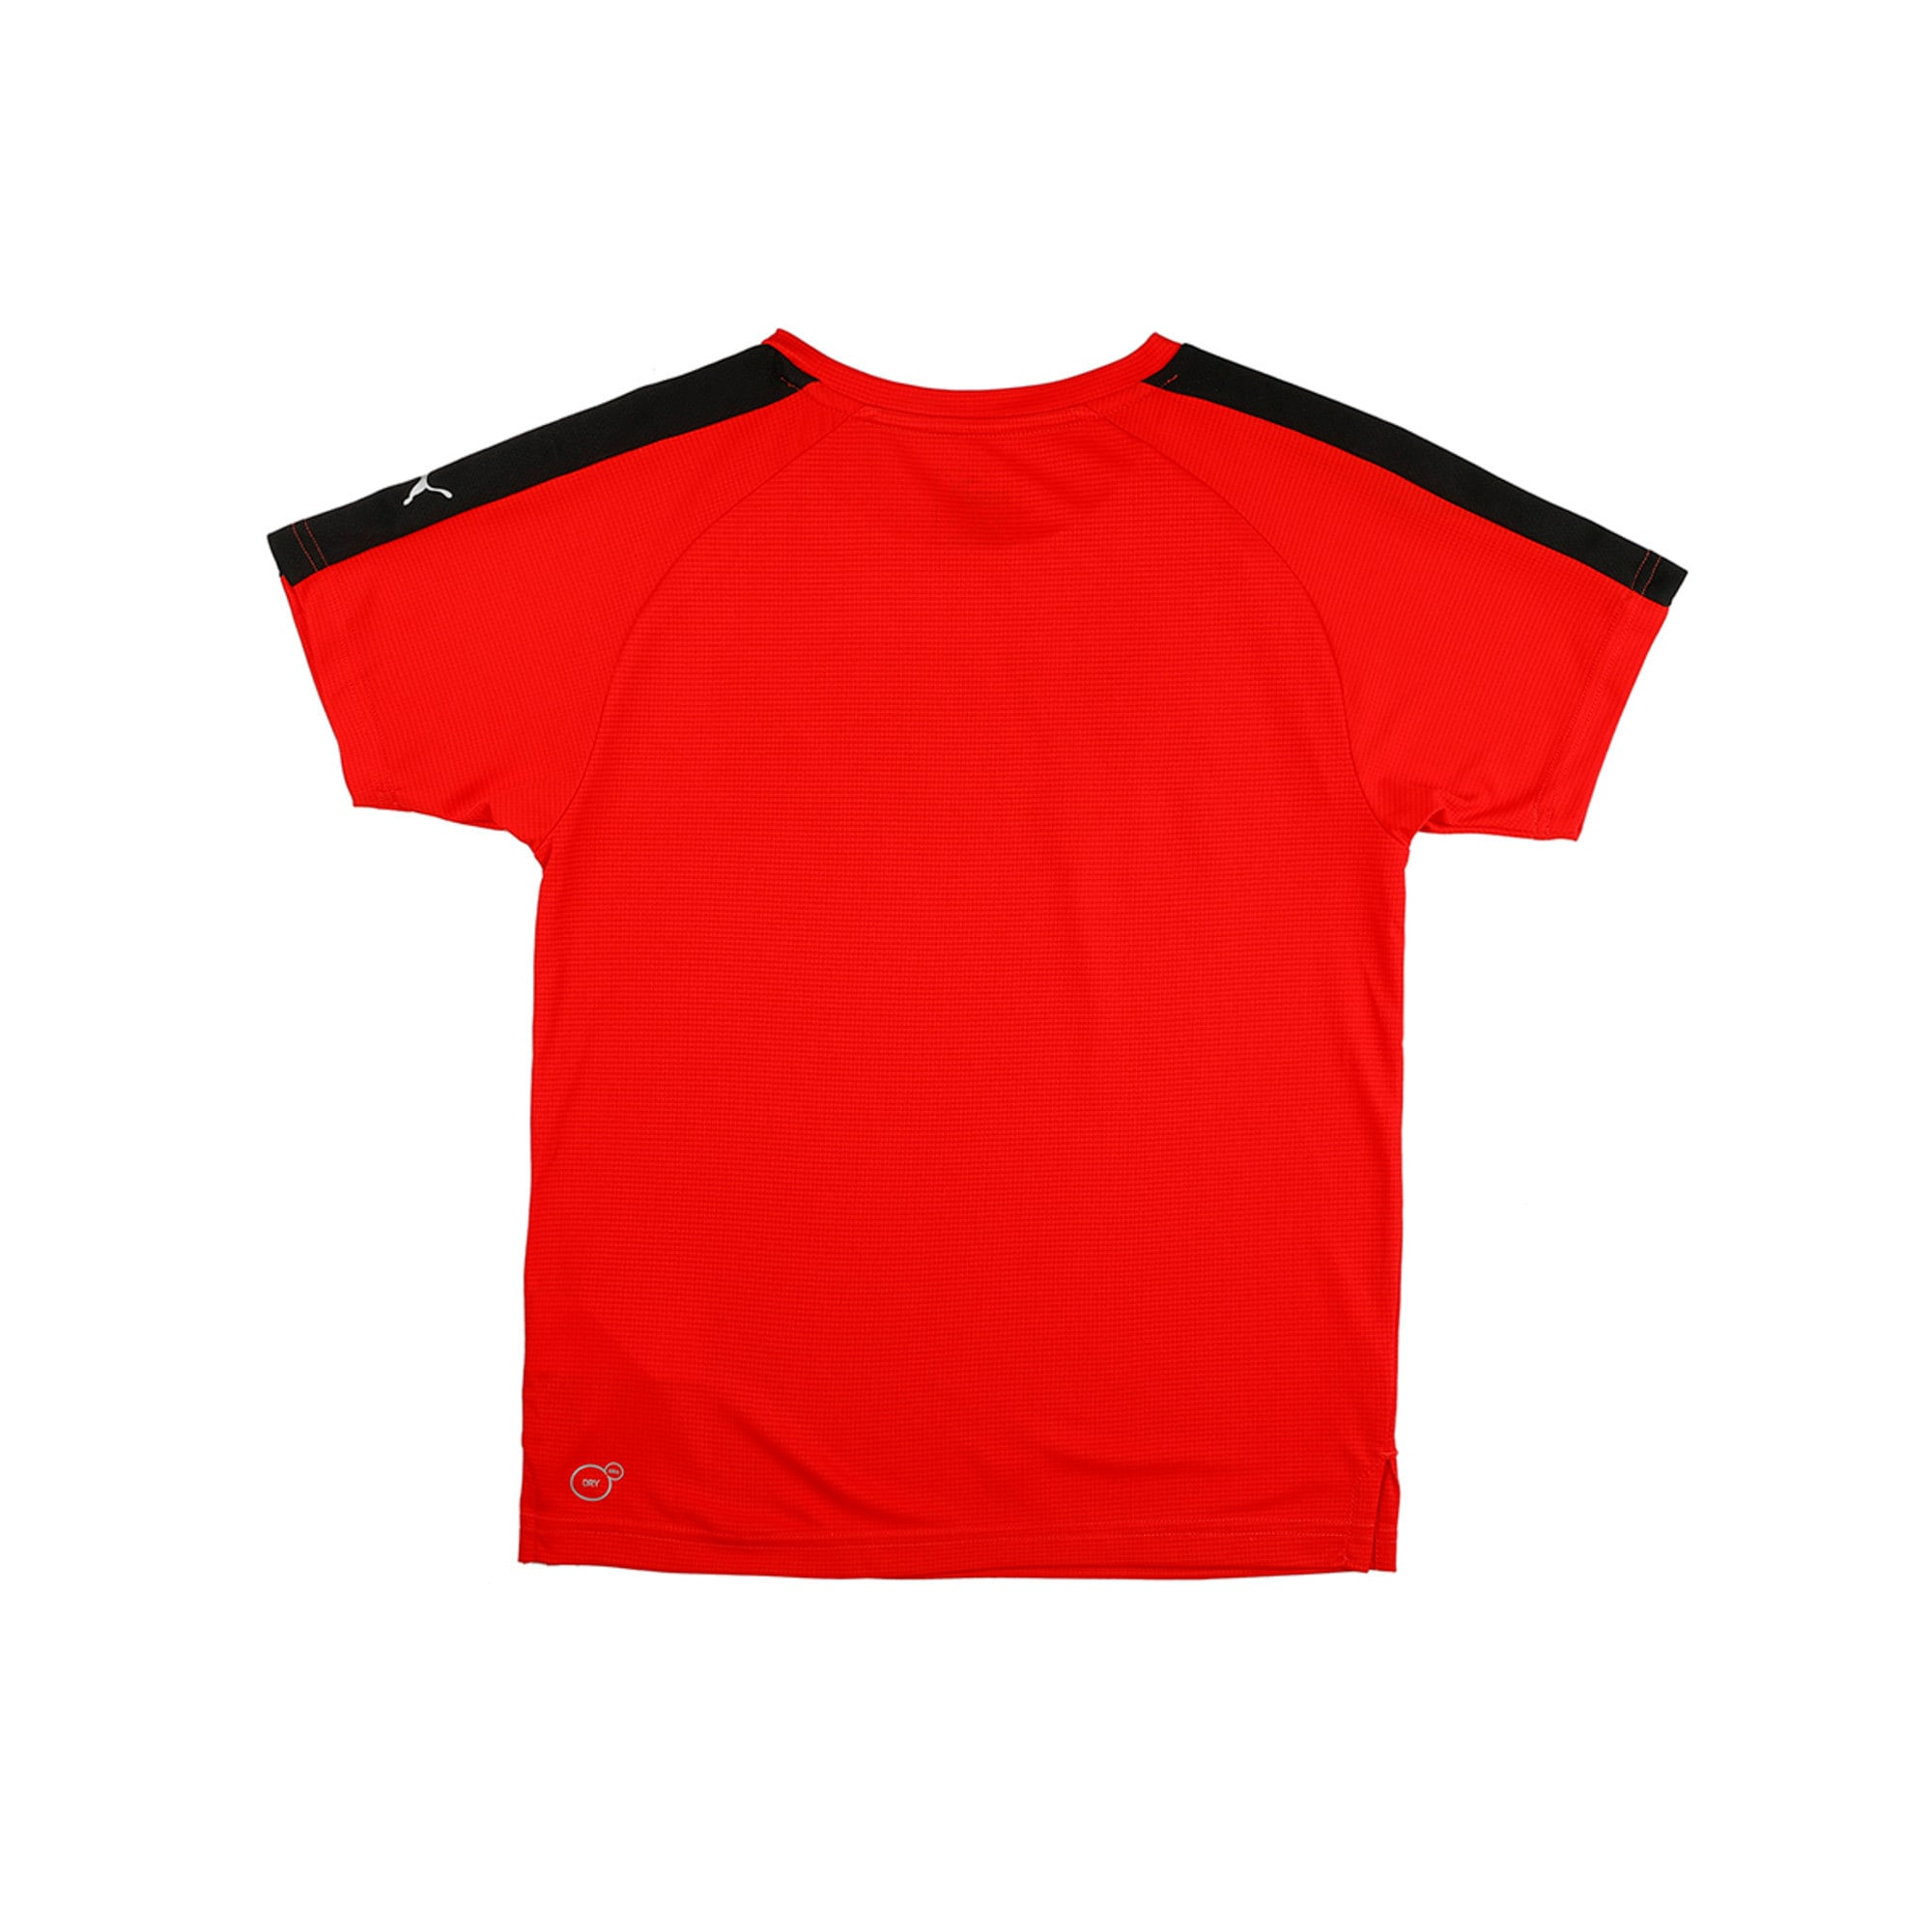 Thumbnail 3 of Gym Graphic Tee Puma Black, Flame Scarlet, medium-IND